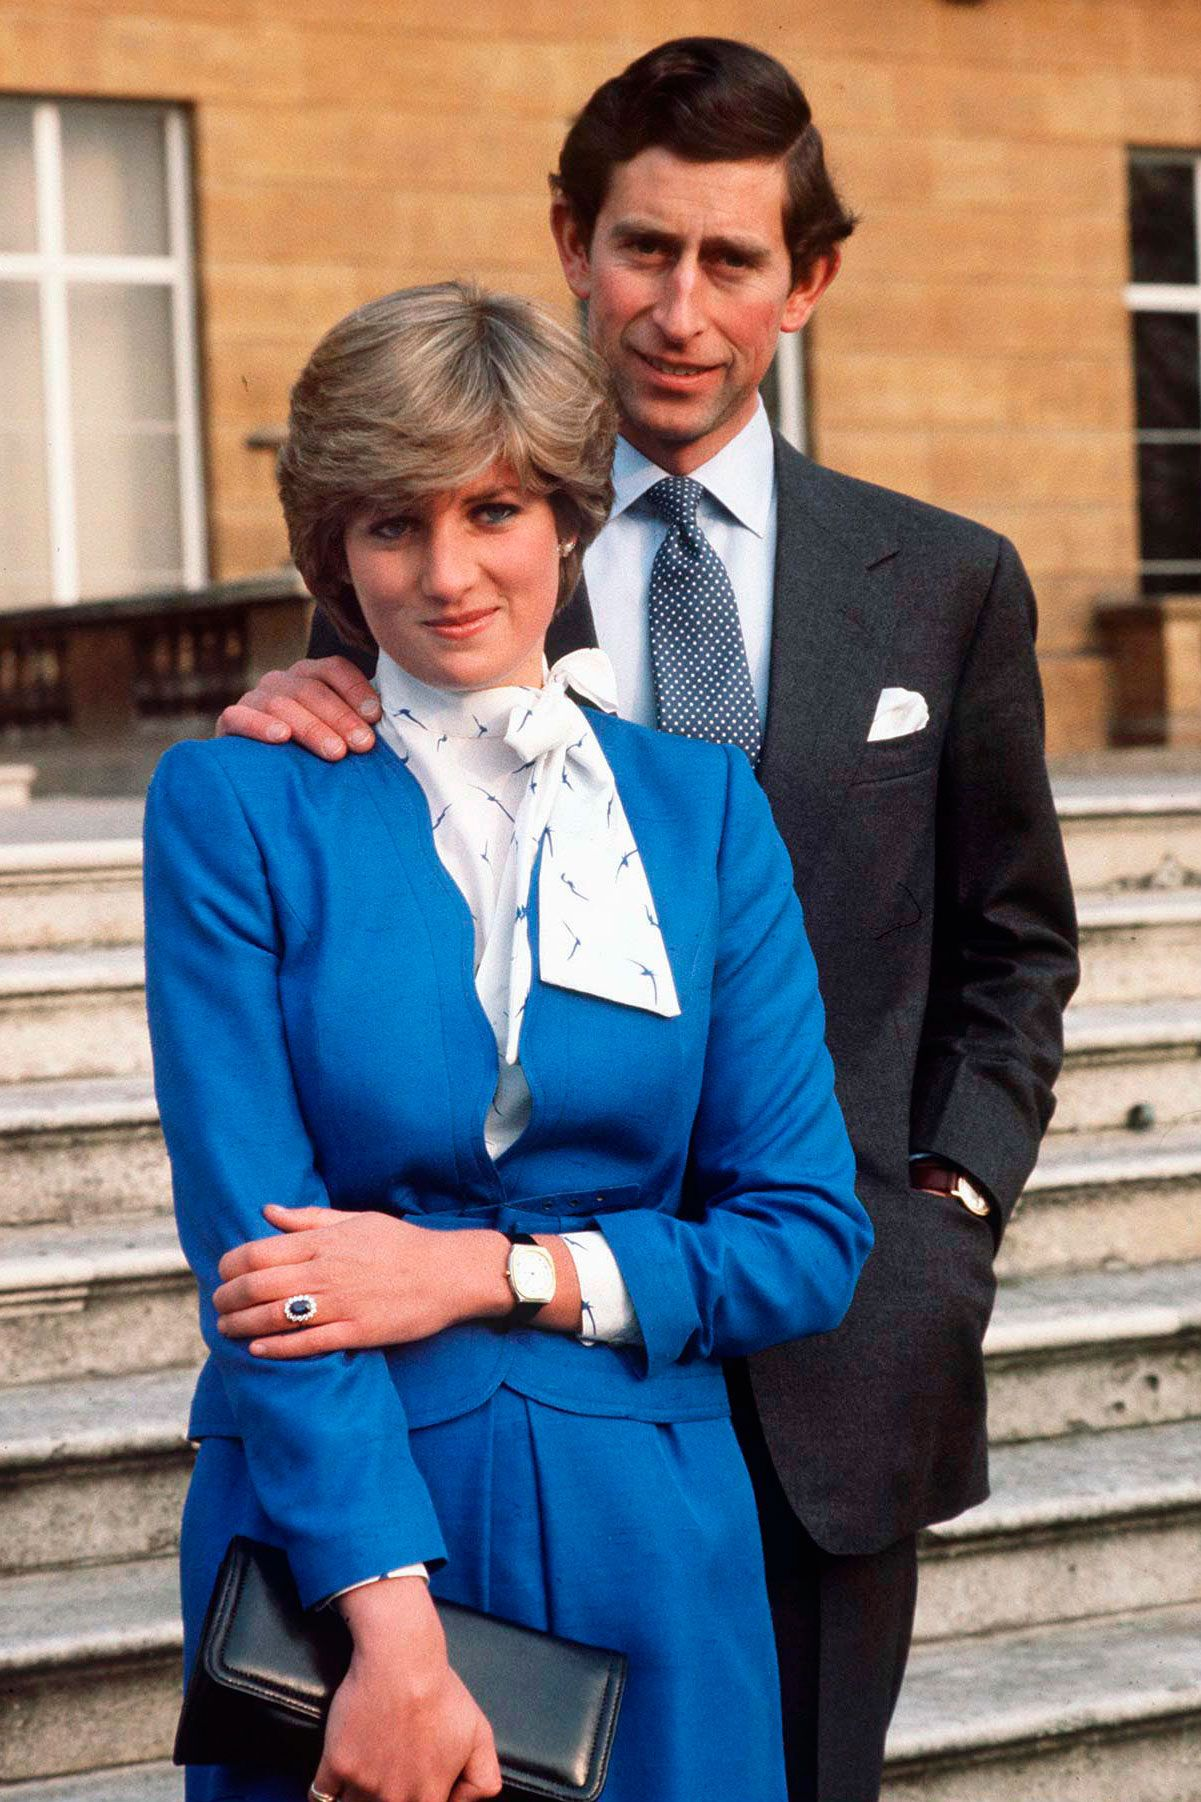 """<p>In her engagement photos, a fresh-faced&nbsp&#x3B;Lady Diana Spencer wore sapphire blue to match her engagement ring, and the photos were an instant hit.&nbsp&#x3B;</p><p><strong data-redactor-tag=""""strong"""" data-verified=""""redactor"""">RELATED: </strong><a href=""""http://www.redbookmag.com/love-sex/relationships/a50421/princess-diana-cbs-documentary/"""" data-tracking-id=""""recirc-text-link"""" target=""""_blank""""><strong data-redactor-tag=""""strong"""" data-verified=""""redactor"""">Charles and Diana&nbsp&#x3B;Only Met 12 Times Before Getting Married</strong></a> </p>"""